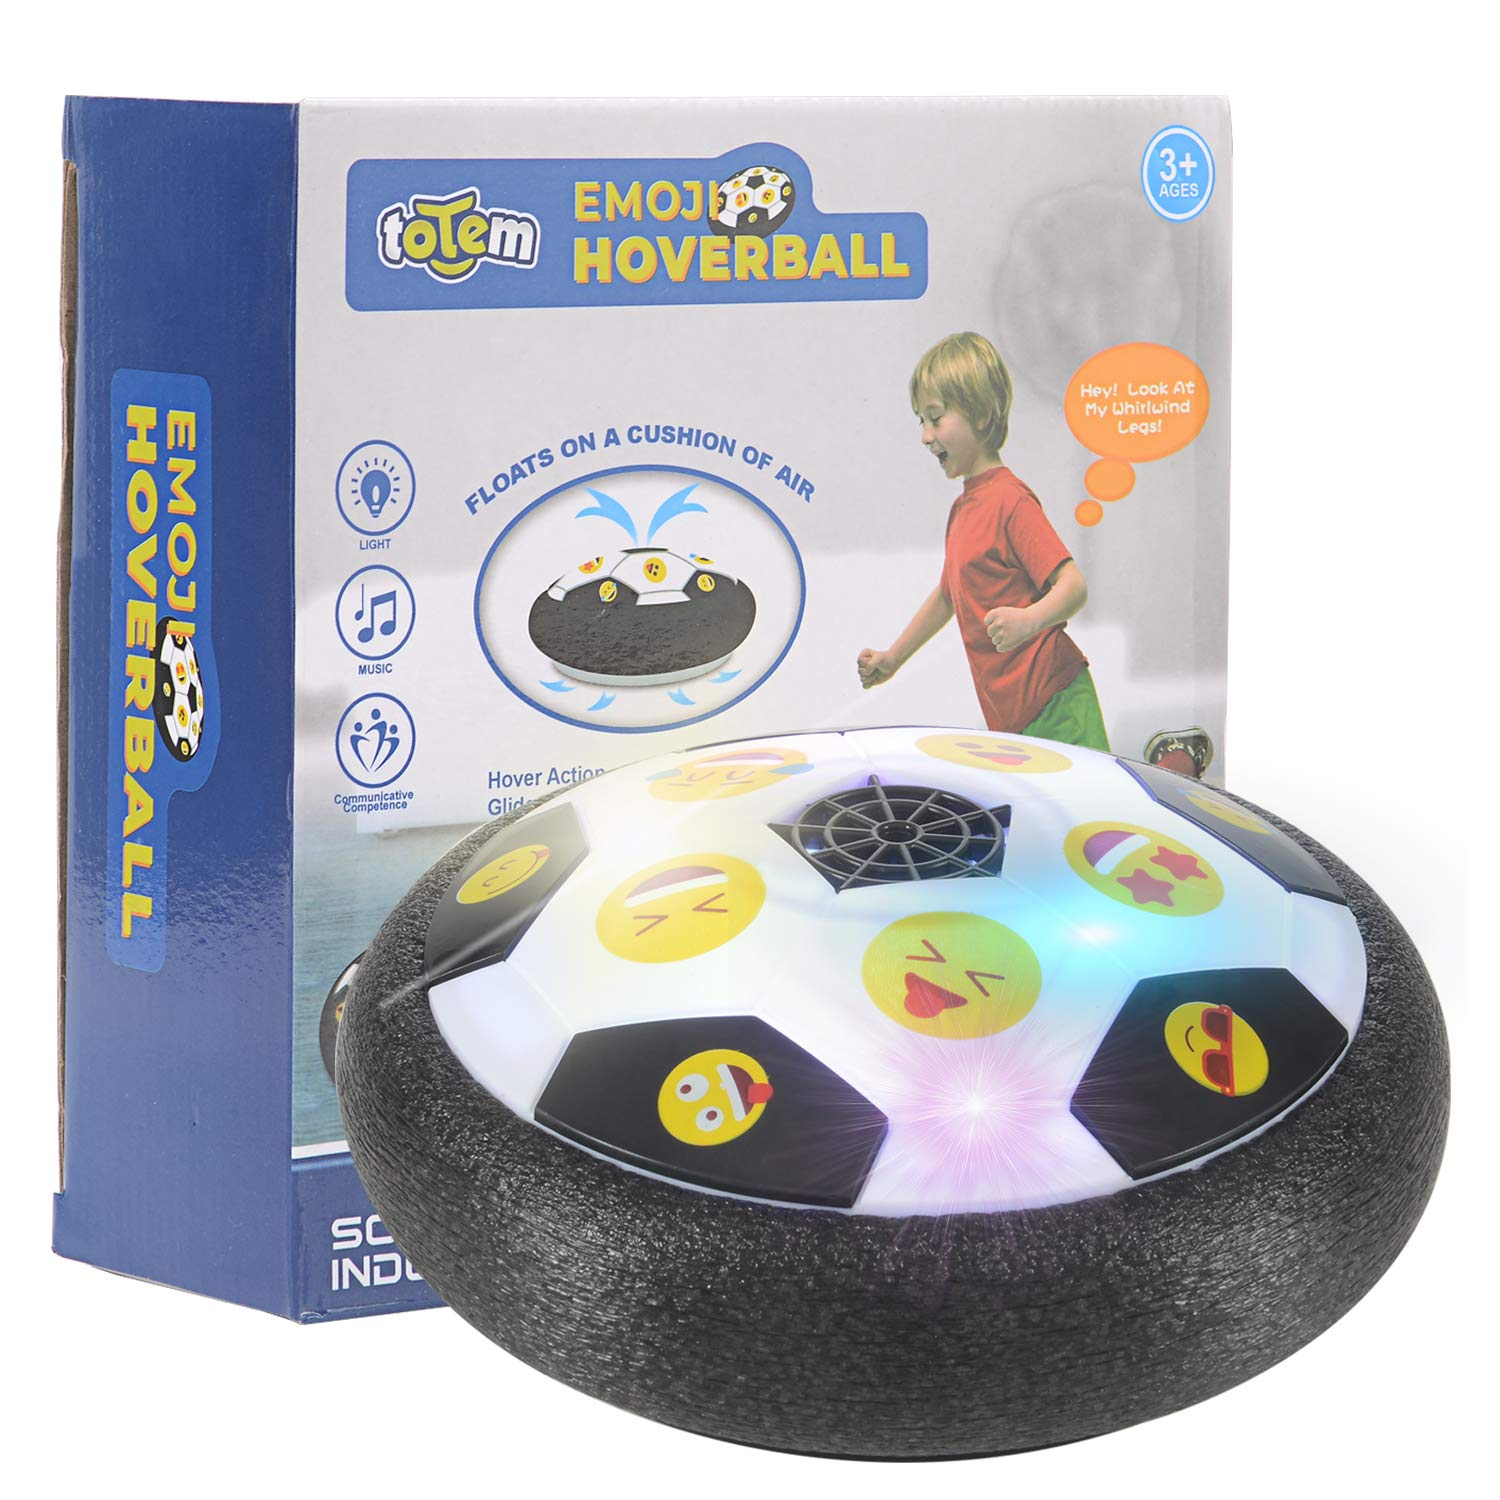 1d6db8d0197d Details about Hover Ball Toys for Boys Gifts Soccer Ball Football LED Light  Foam Bumpers Game